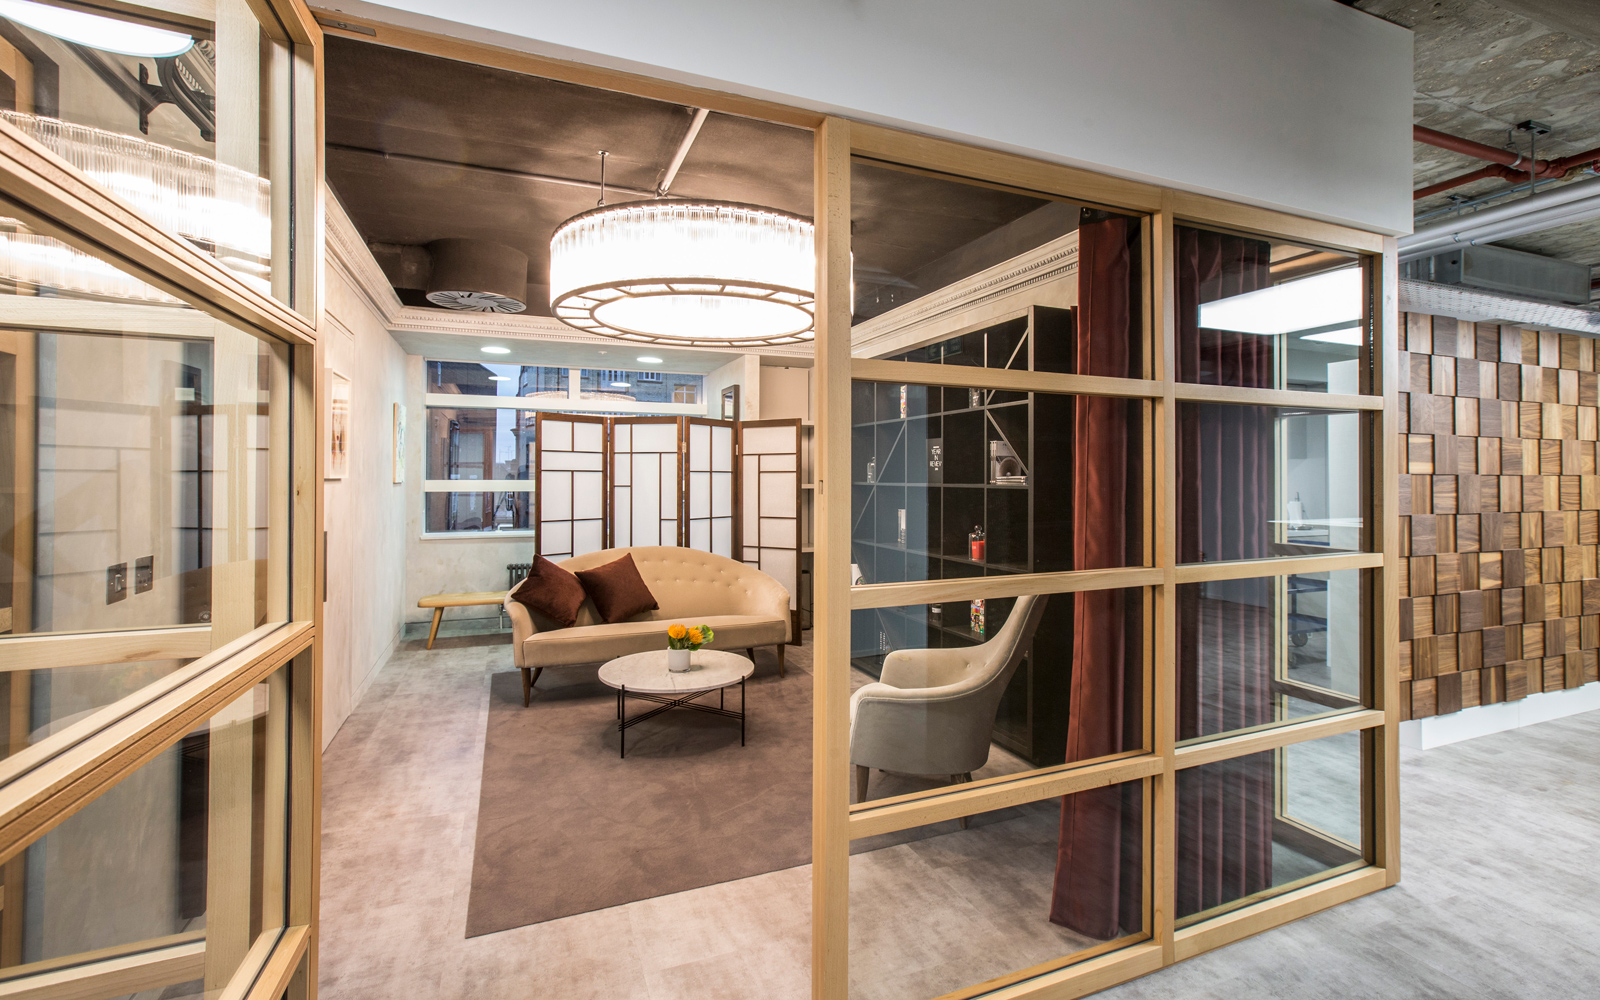 A meeting room, which takes cues from a Japanese Shoji